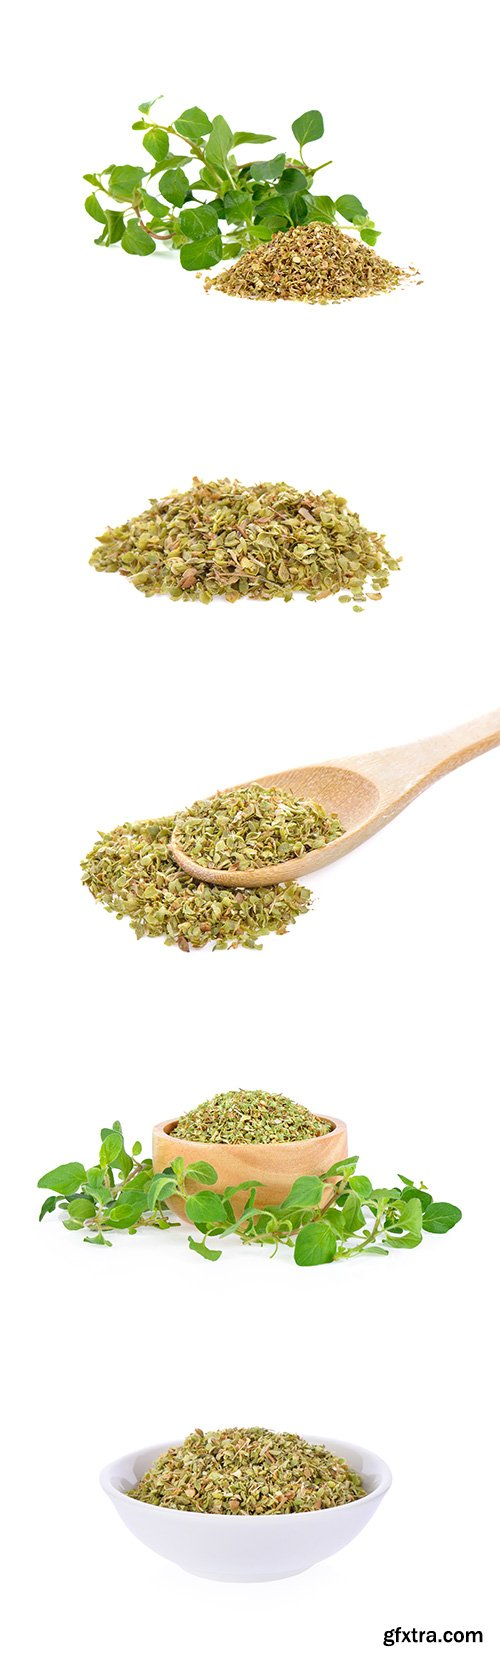 Dried Oregano Isolated - 6xJPGs